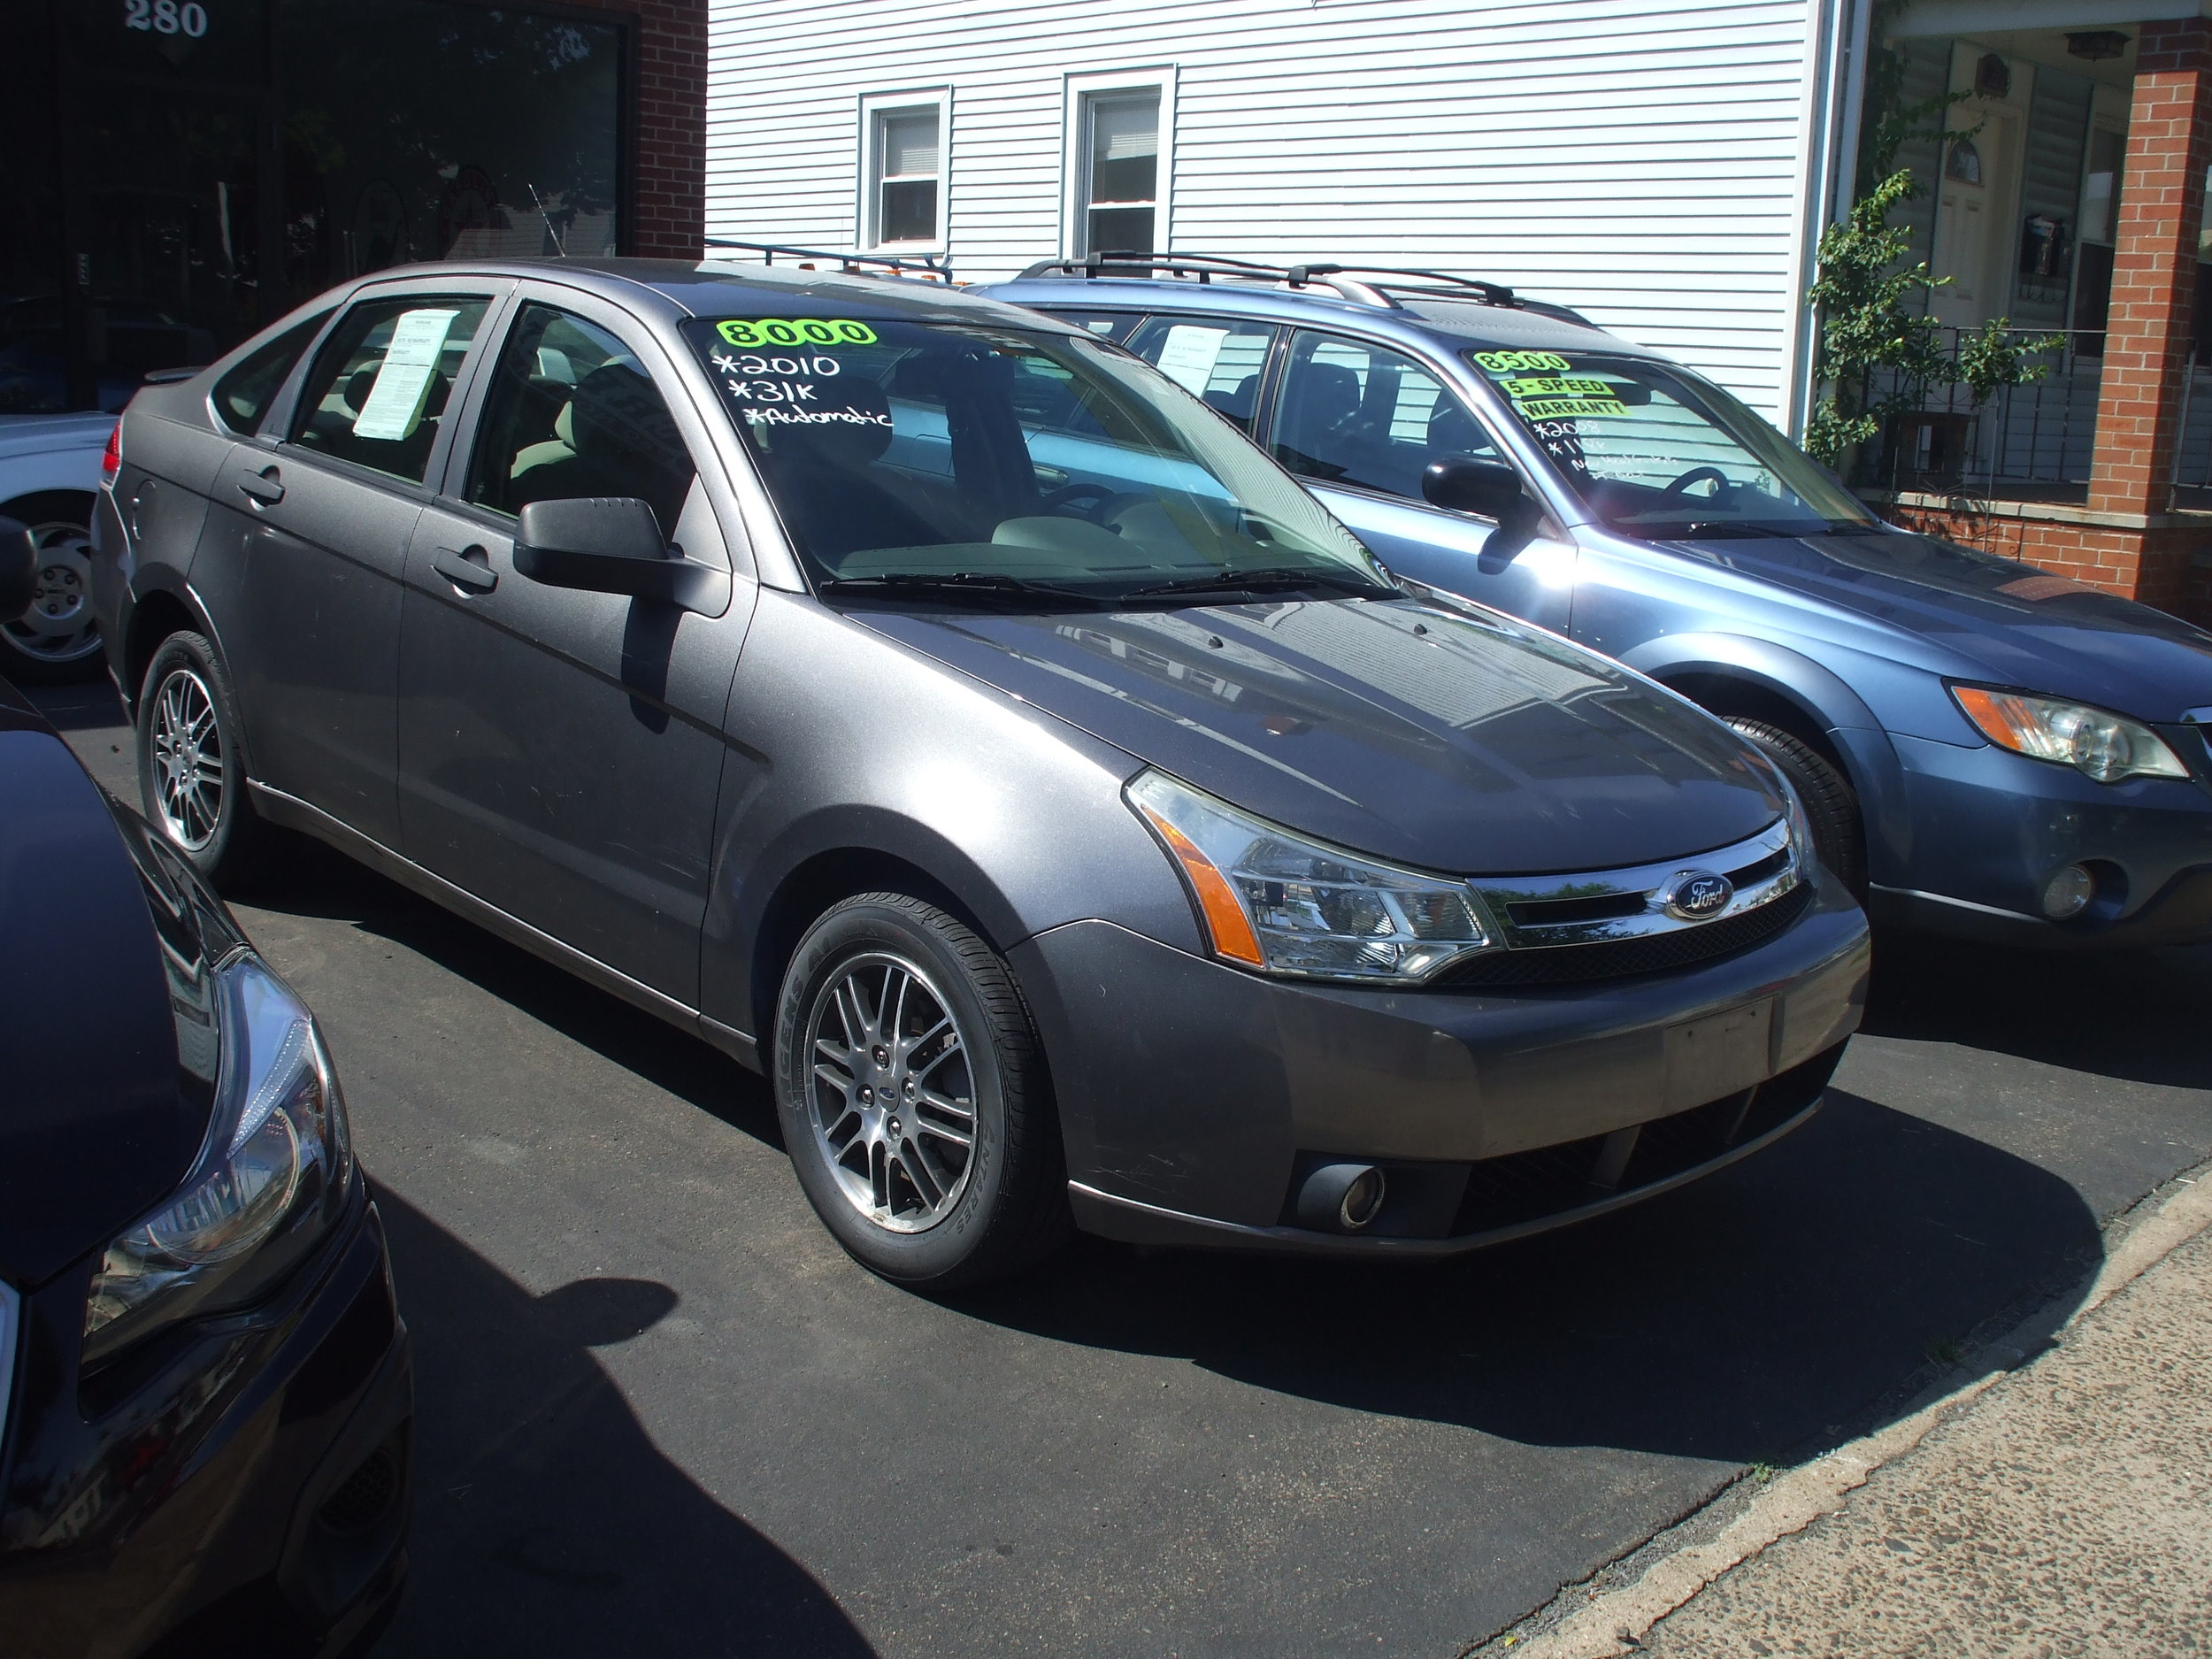 2010 Ford Focus $ 8,000    Grey 4 door auto Great Condition Warranty 30k call or stop by Cerritos Auto Sales 280 N. Colony st Wallingford CT 06492.